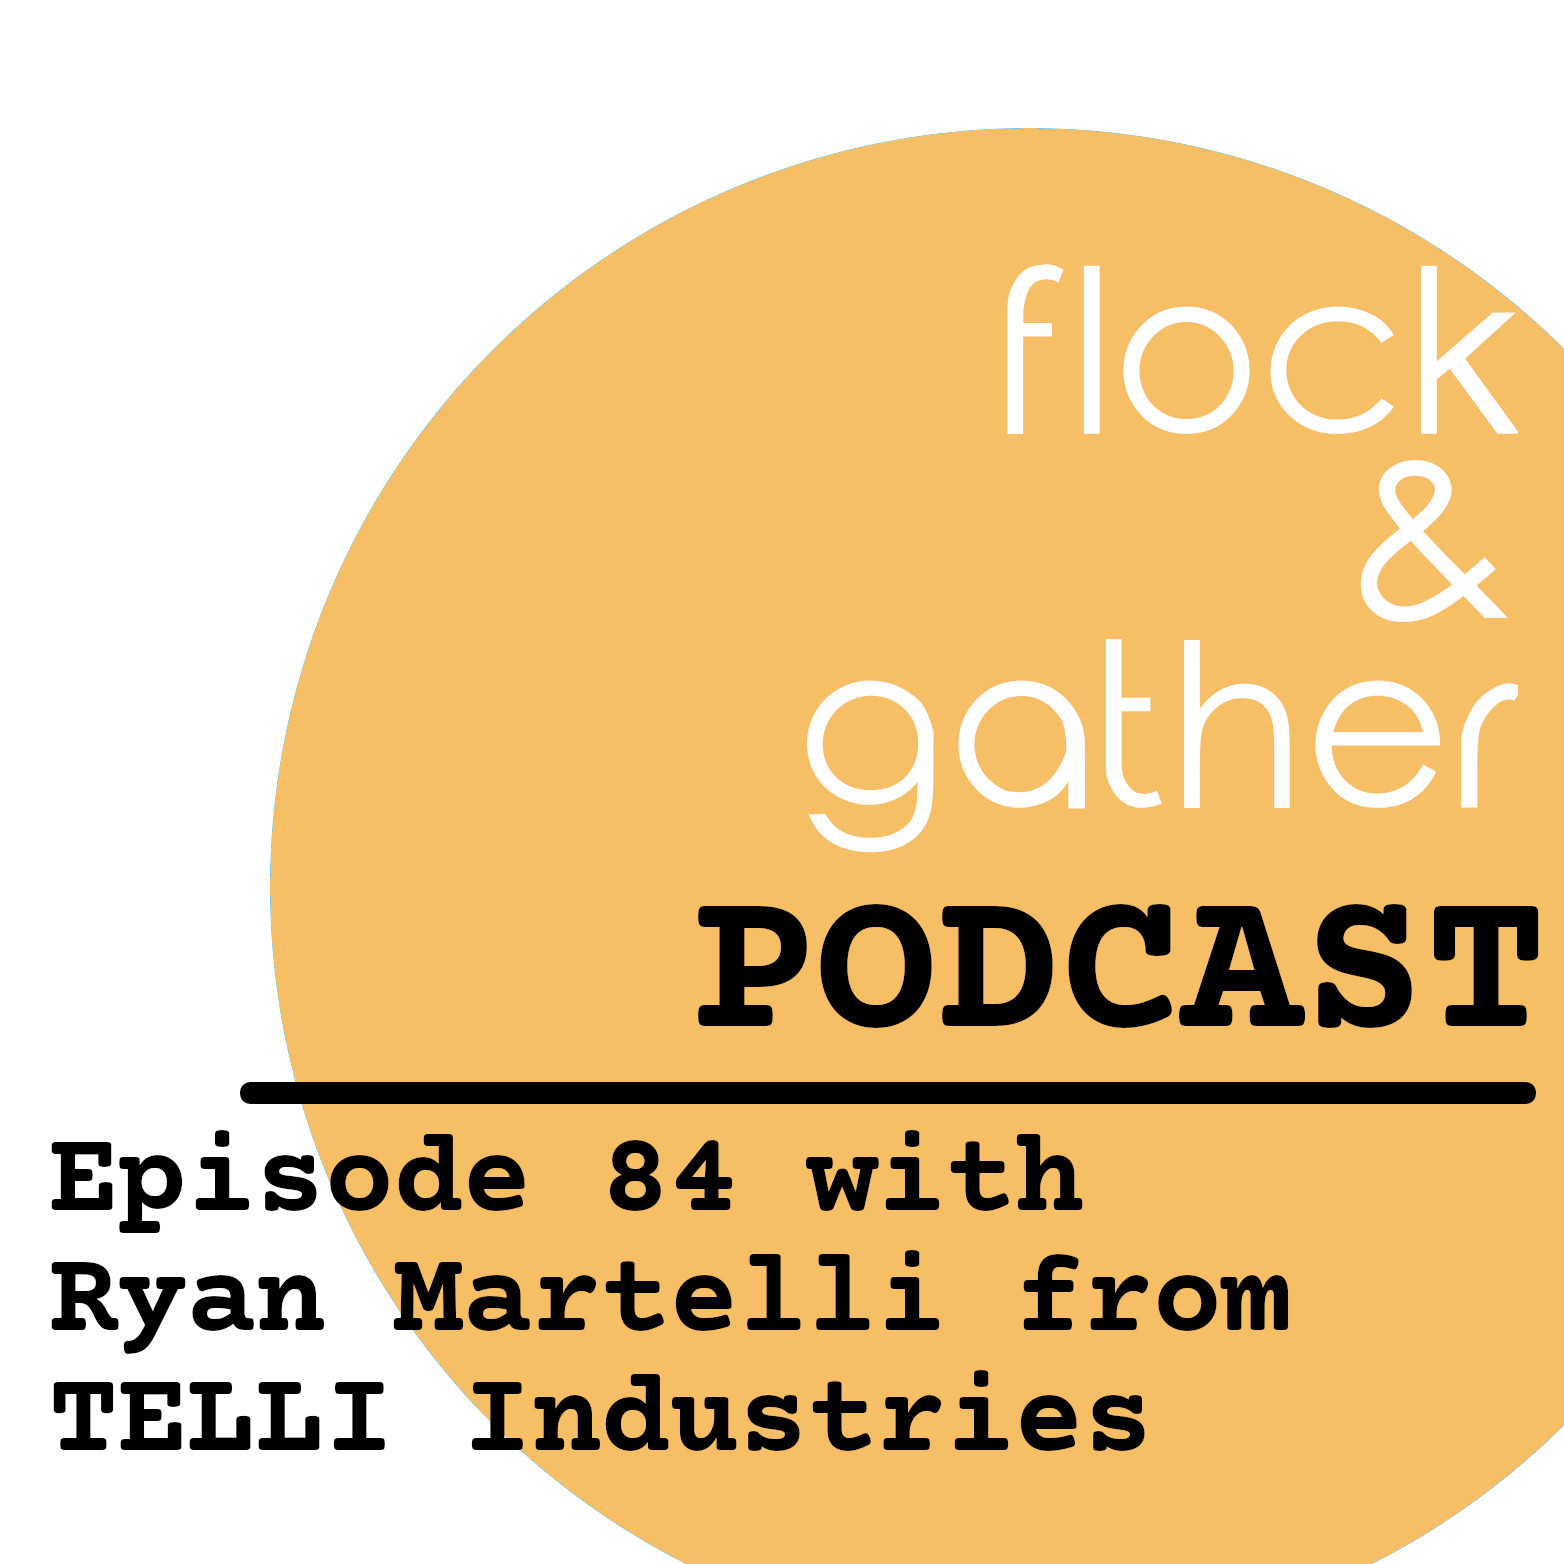 Flock and Gather Podcast.  Episode 85 with Ryan Martelli from TELLI Industries